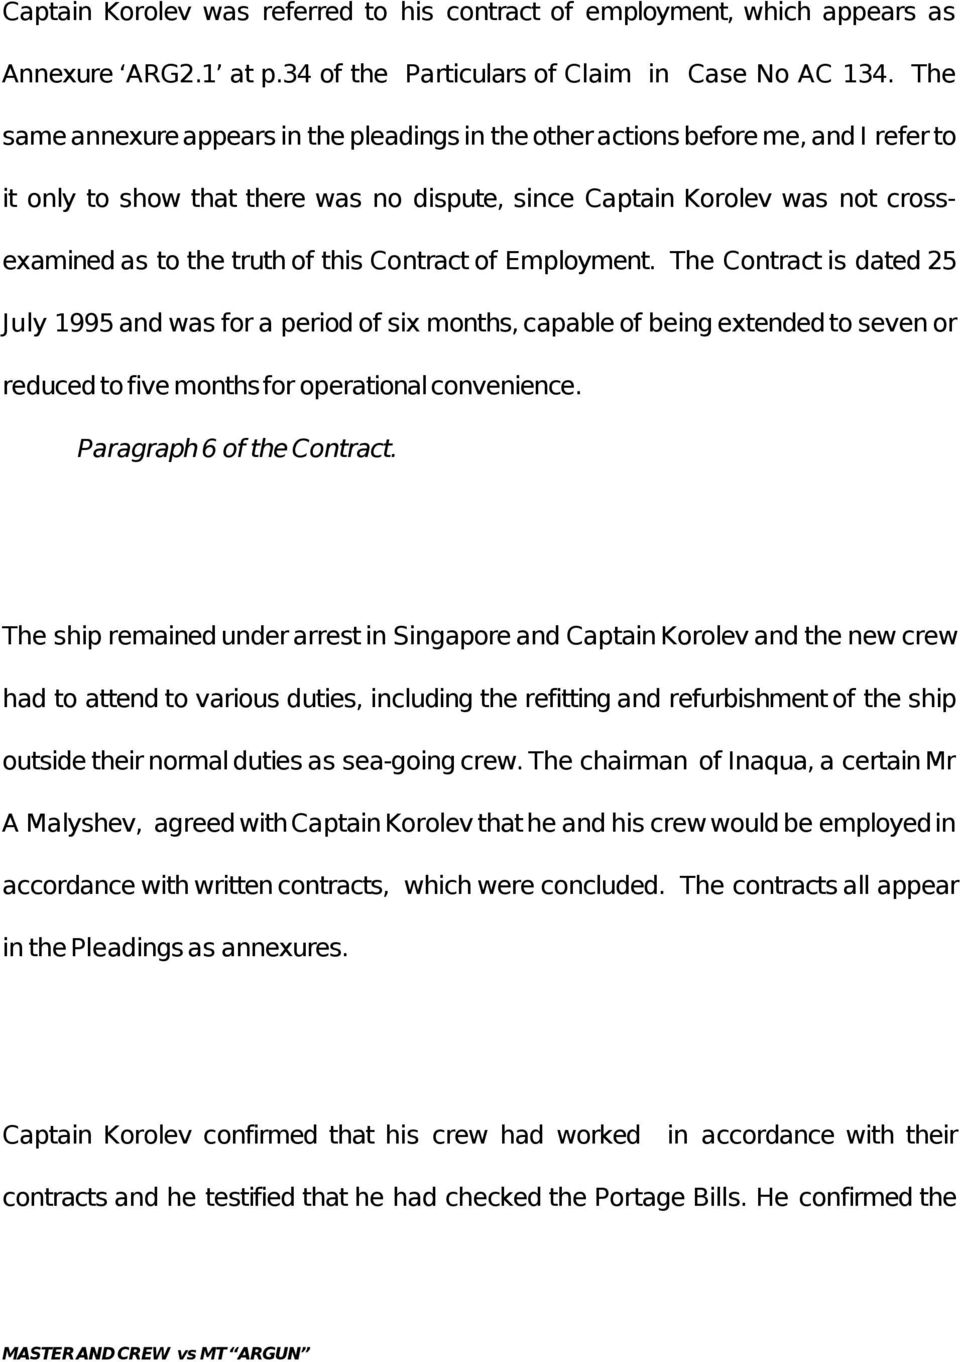 this Contract of Employment. The Contract is dated 25 July 1995 and was for a period of six months, capable of being extended to seven or reduced to five months for operational convenience.